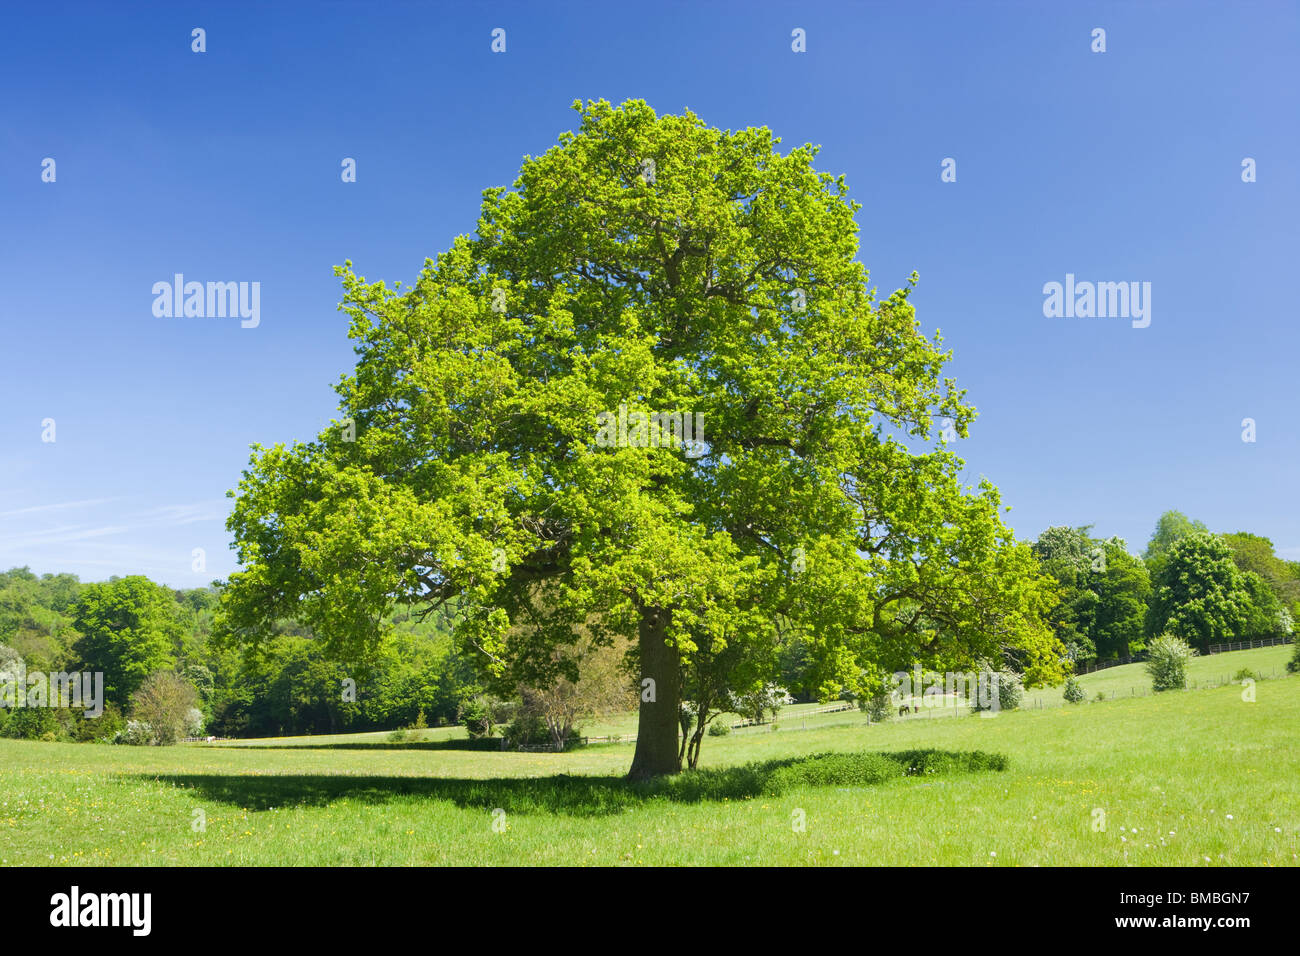 Oak tree in field, Ranmore Common, Surrey, UK Photo Stock